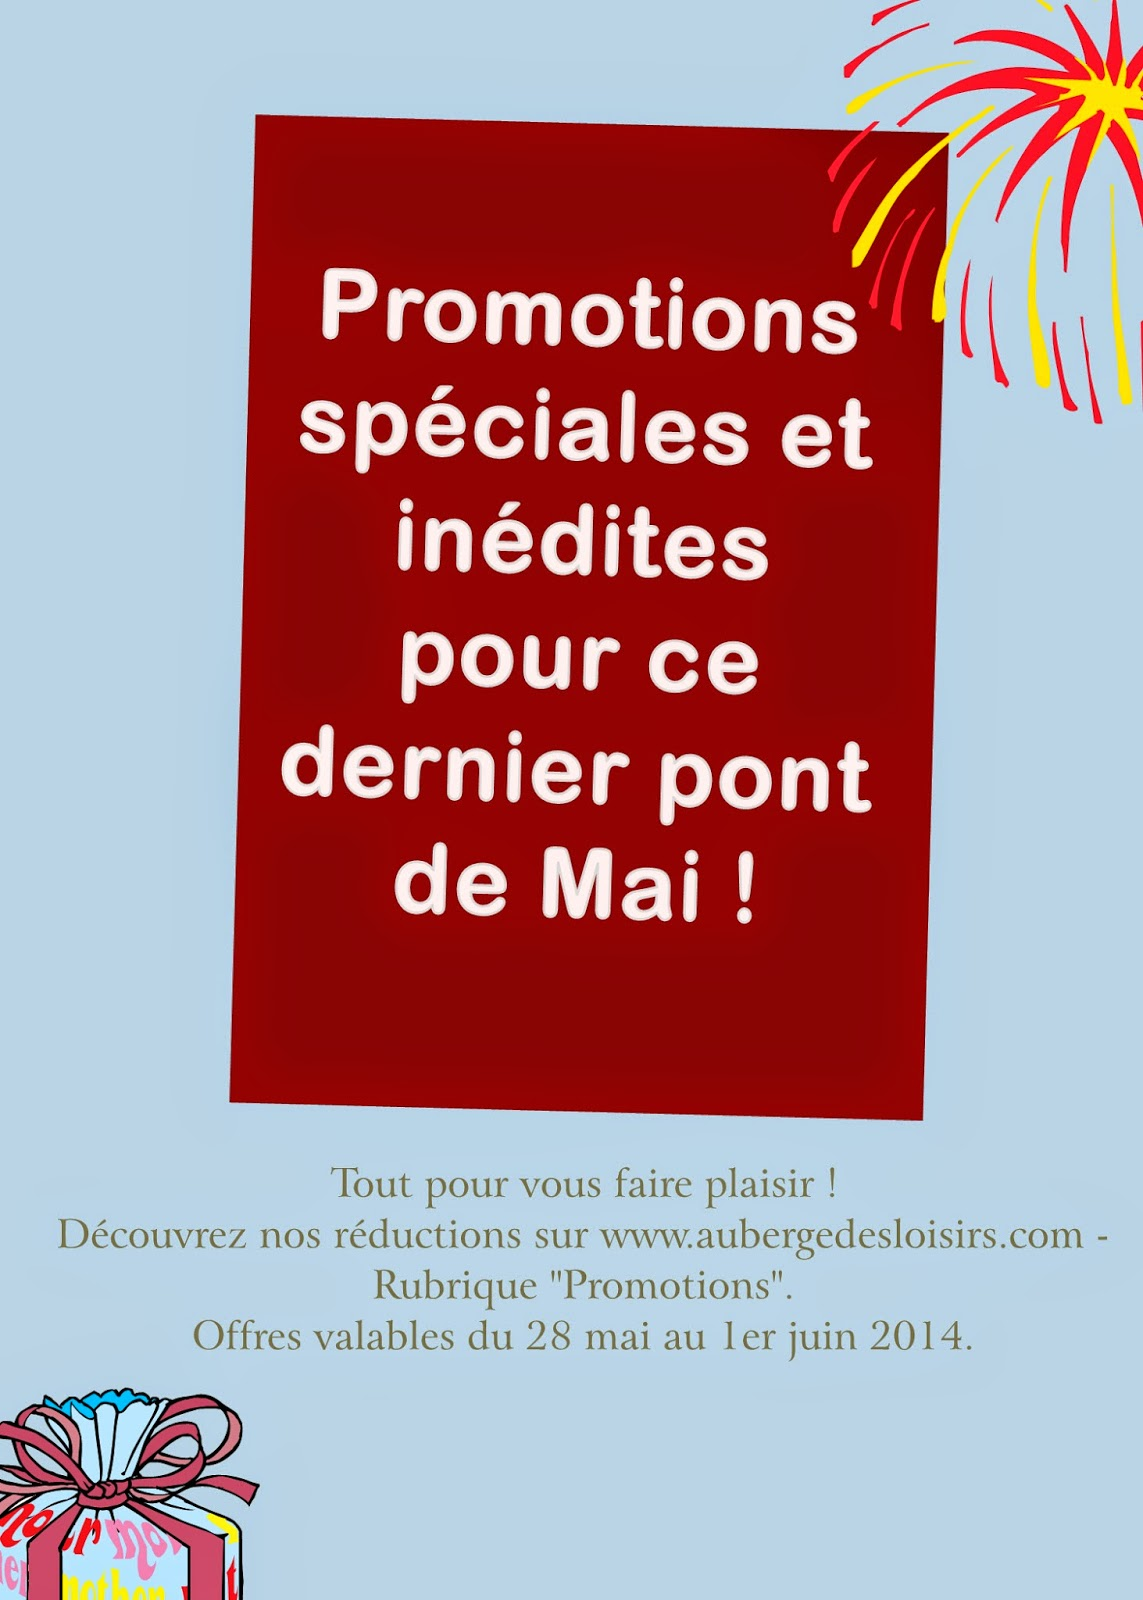 http://www.aubergedesloisirs.com/157-promotions